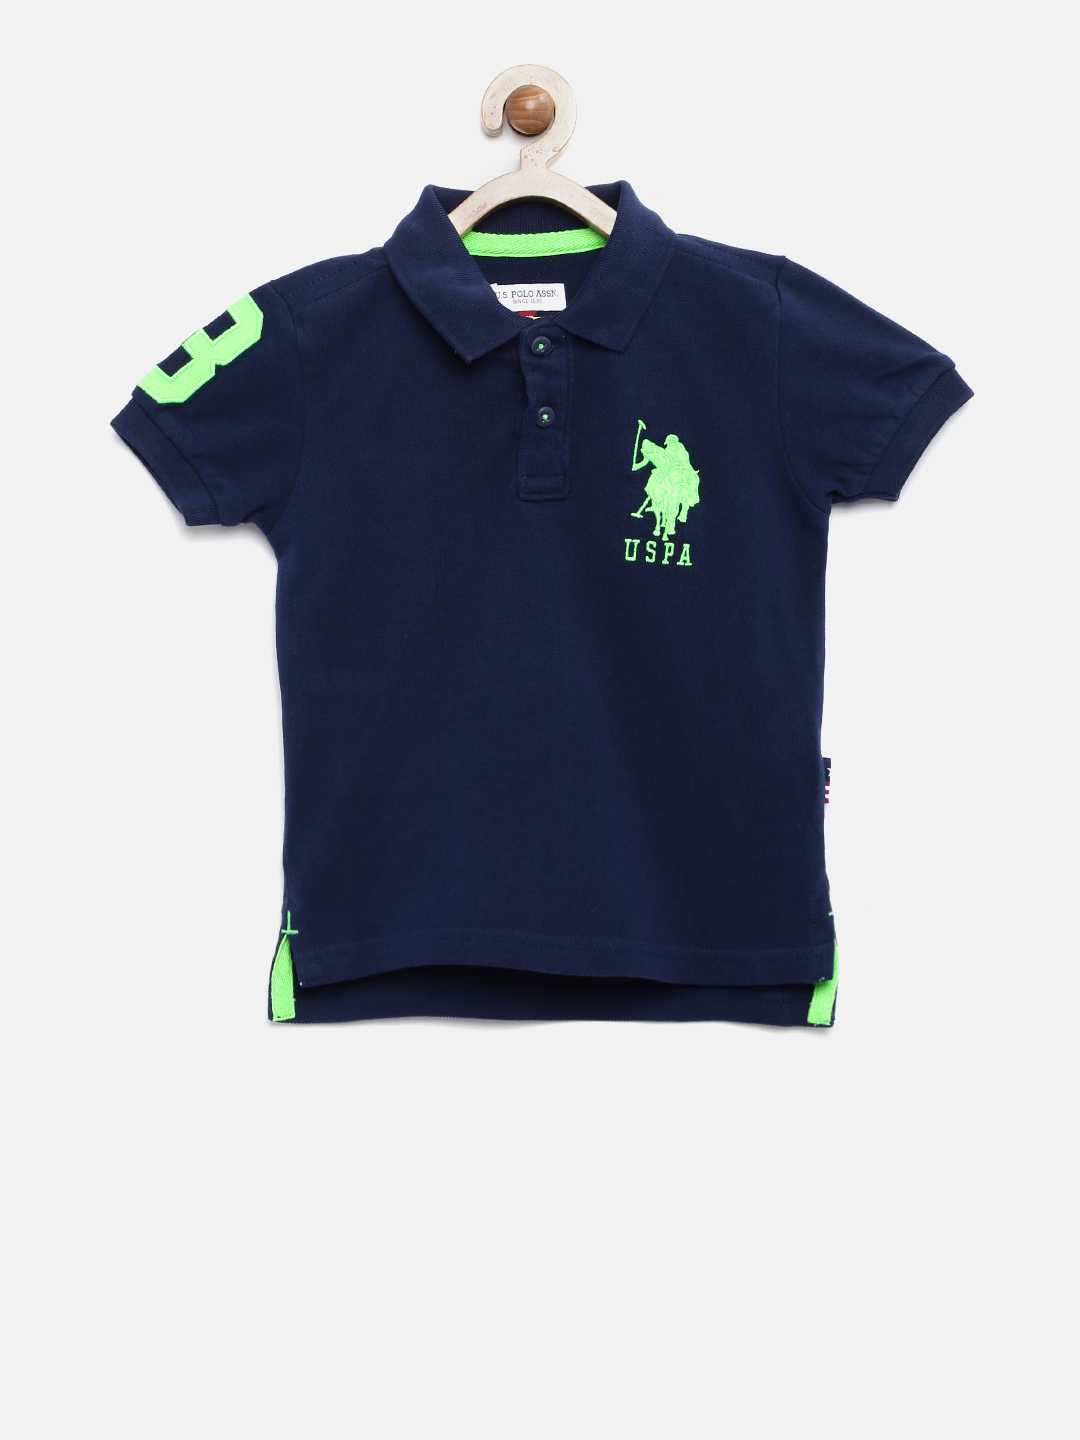 b611e612ac5 U.s. Polo Assn. Assn Kids Topwear Size - Buy U.s. Polo Assn. Assn Kids  Topwear Size online in India